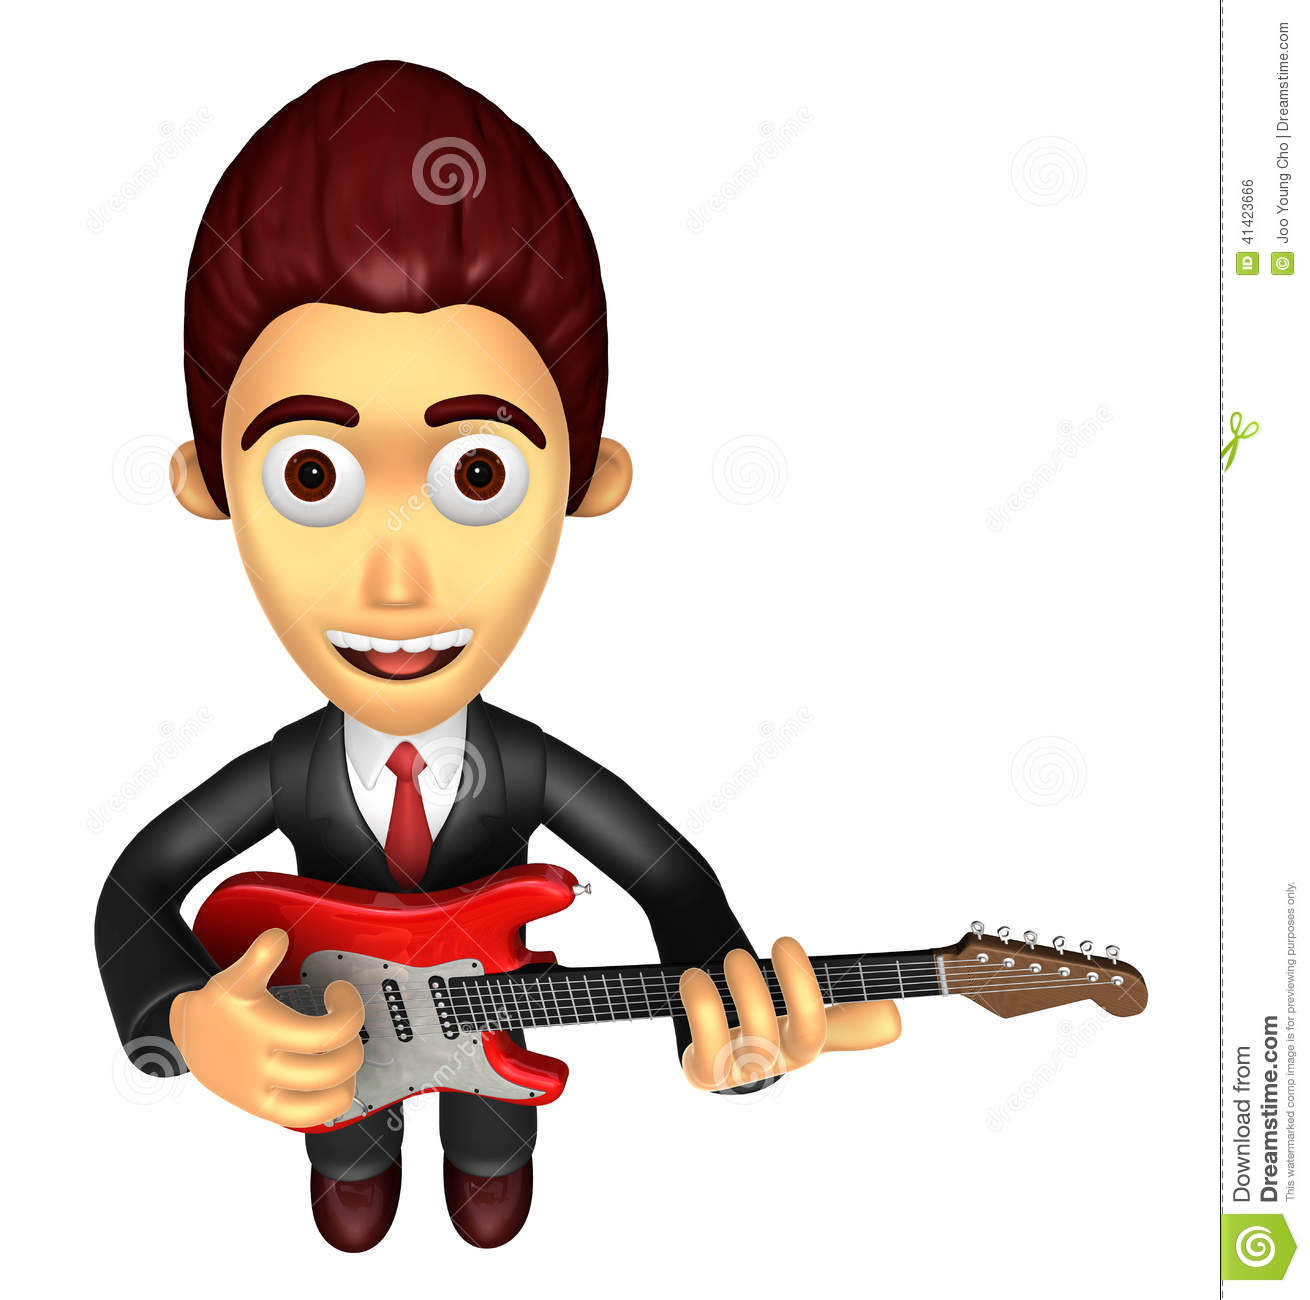 3d Man With Electric Guitar Stock Illustration - Image: 87485685